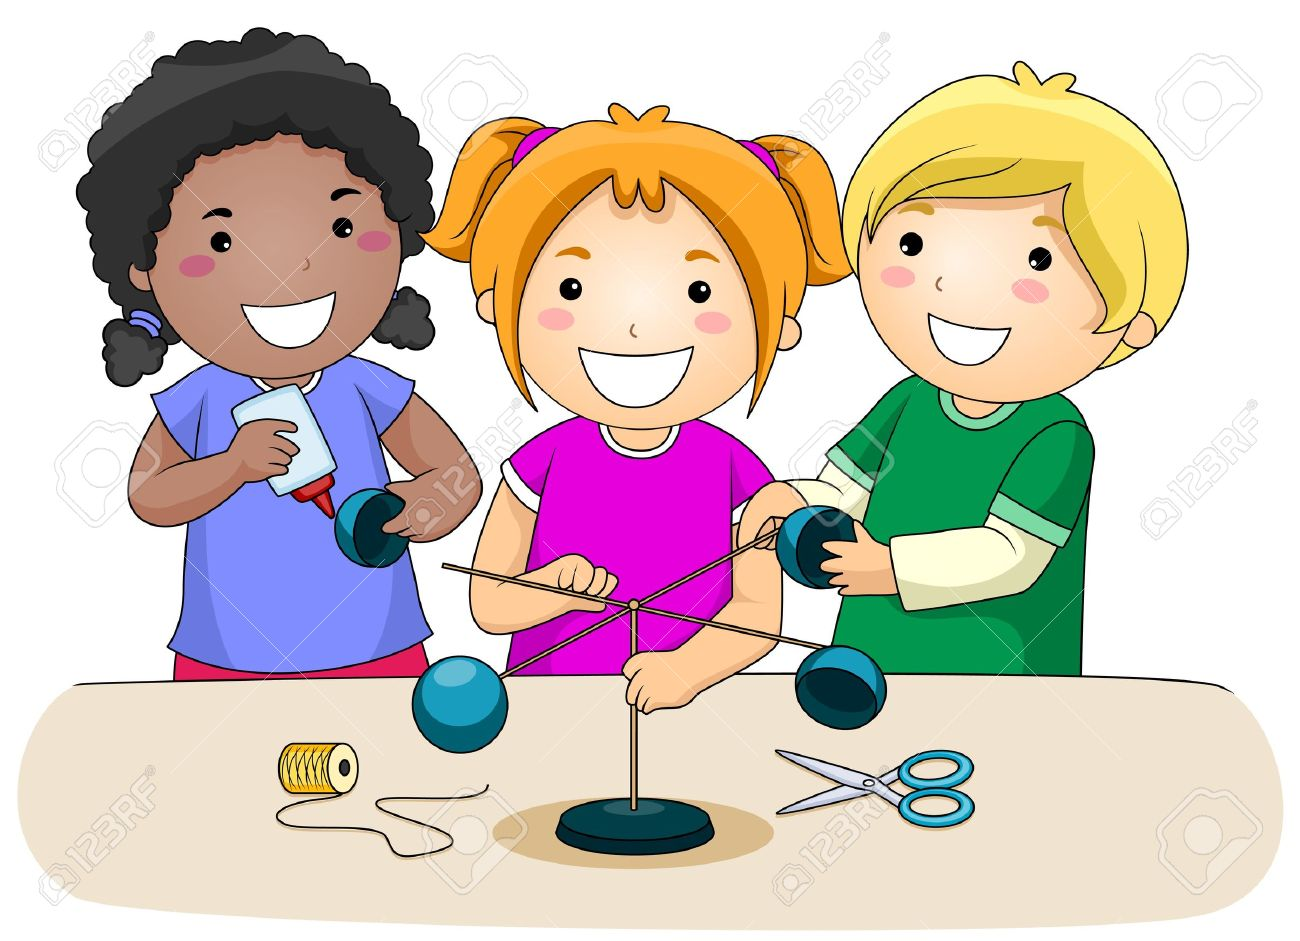 8129520 A Small Group of Kids Making an Anemometer Stock Photo cartoon science kids